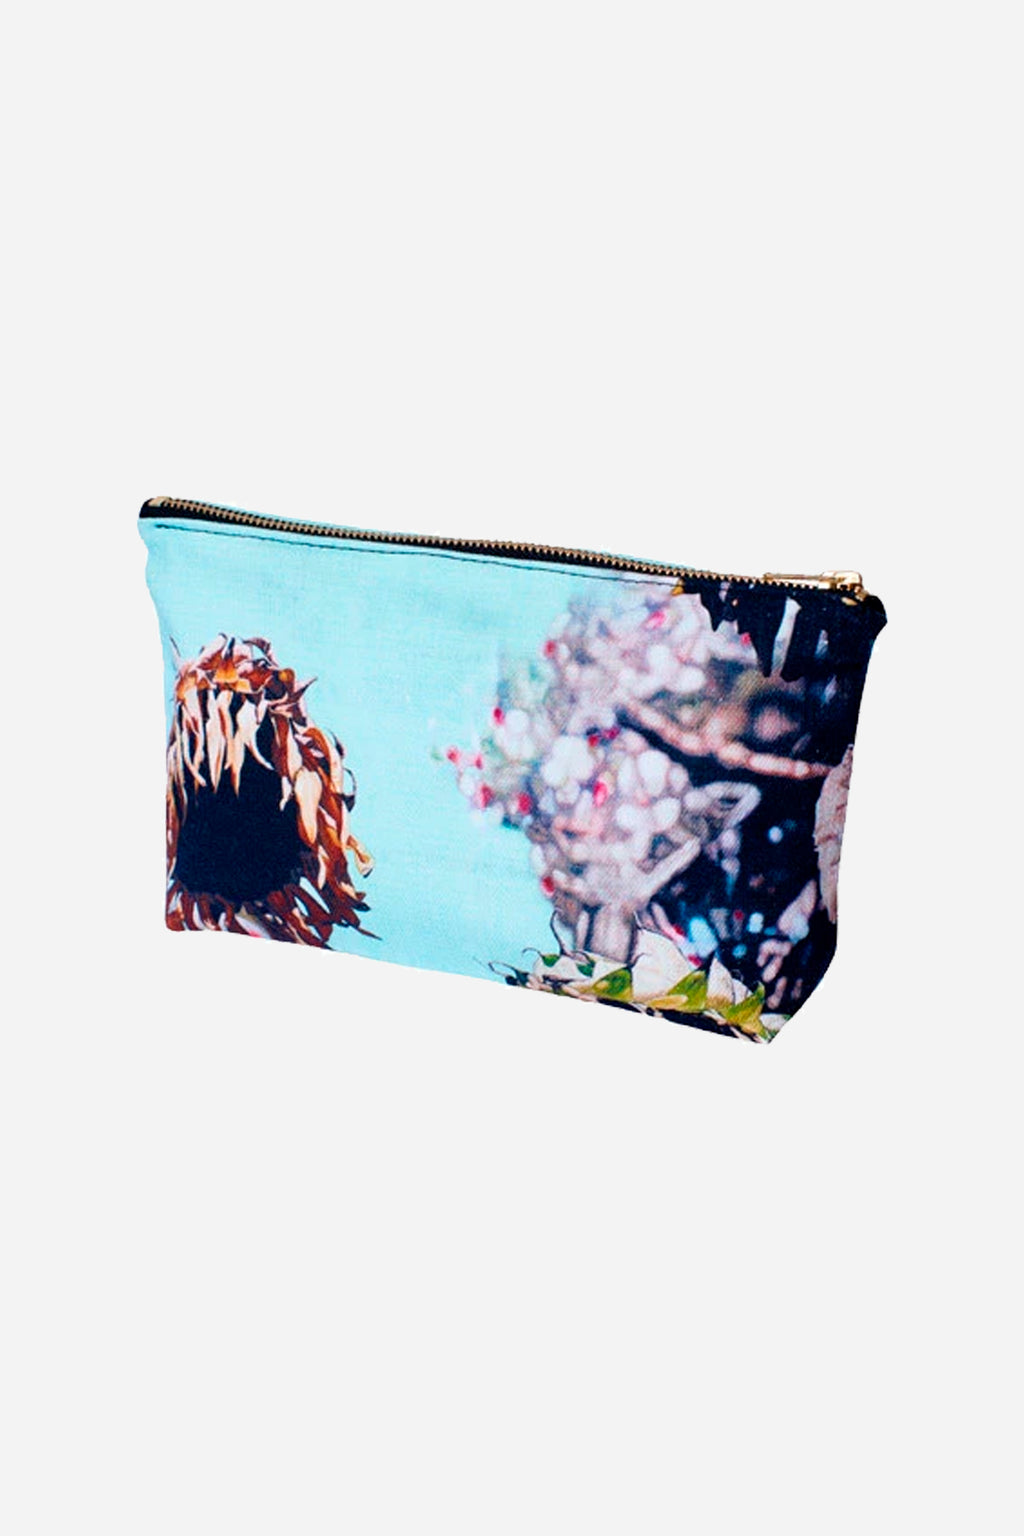 3D PURSE (SUNFLOWER)